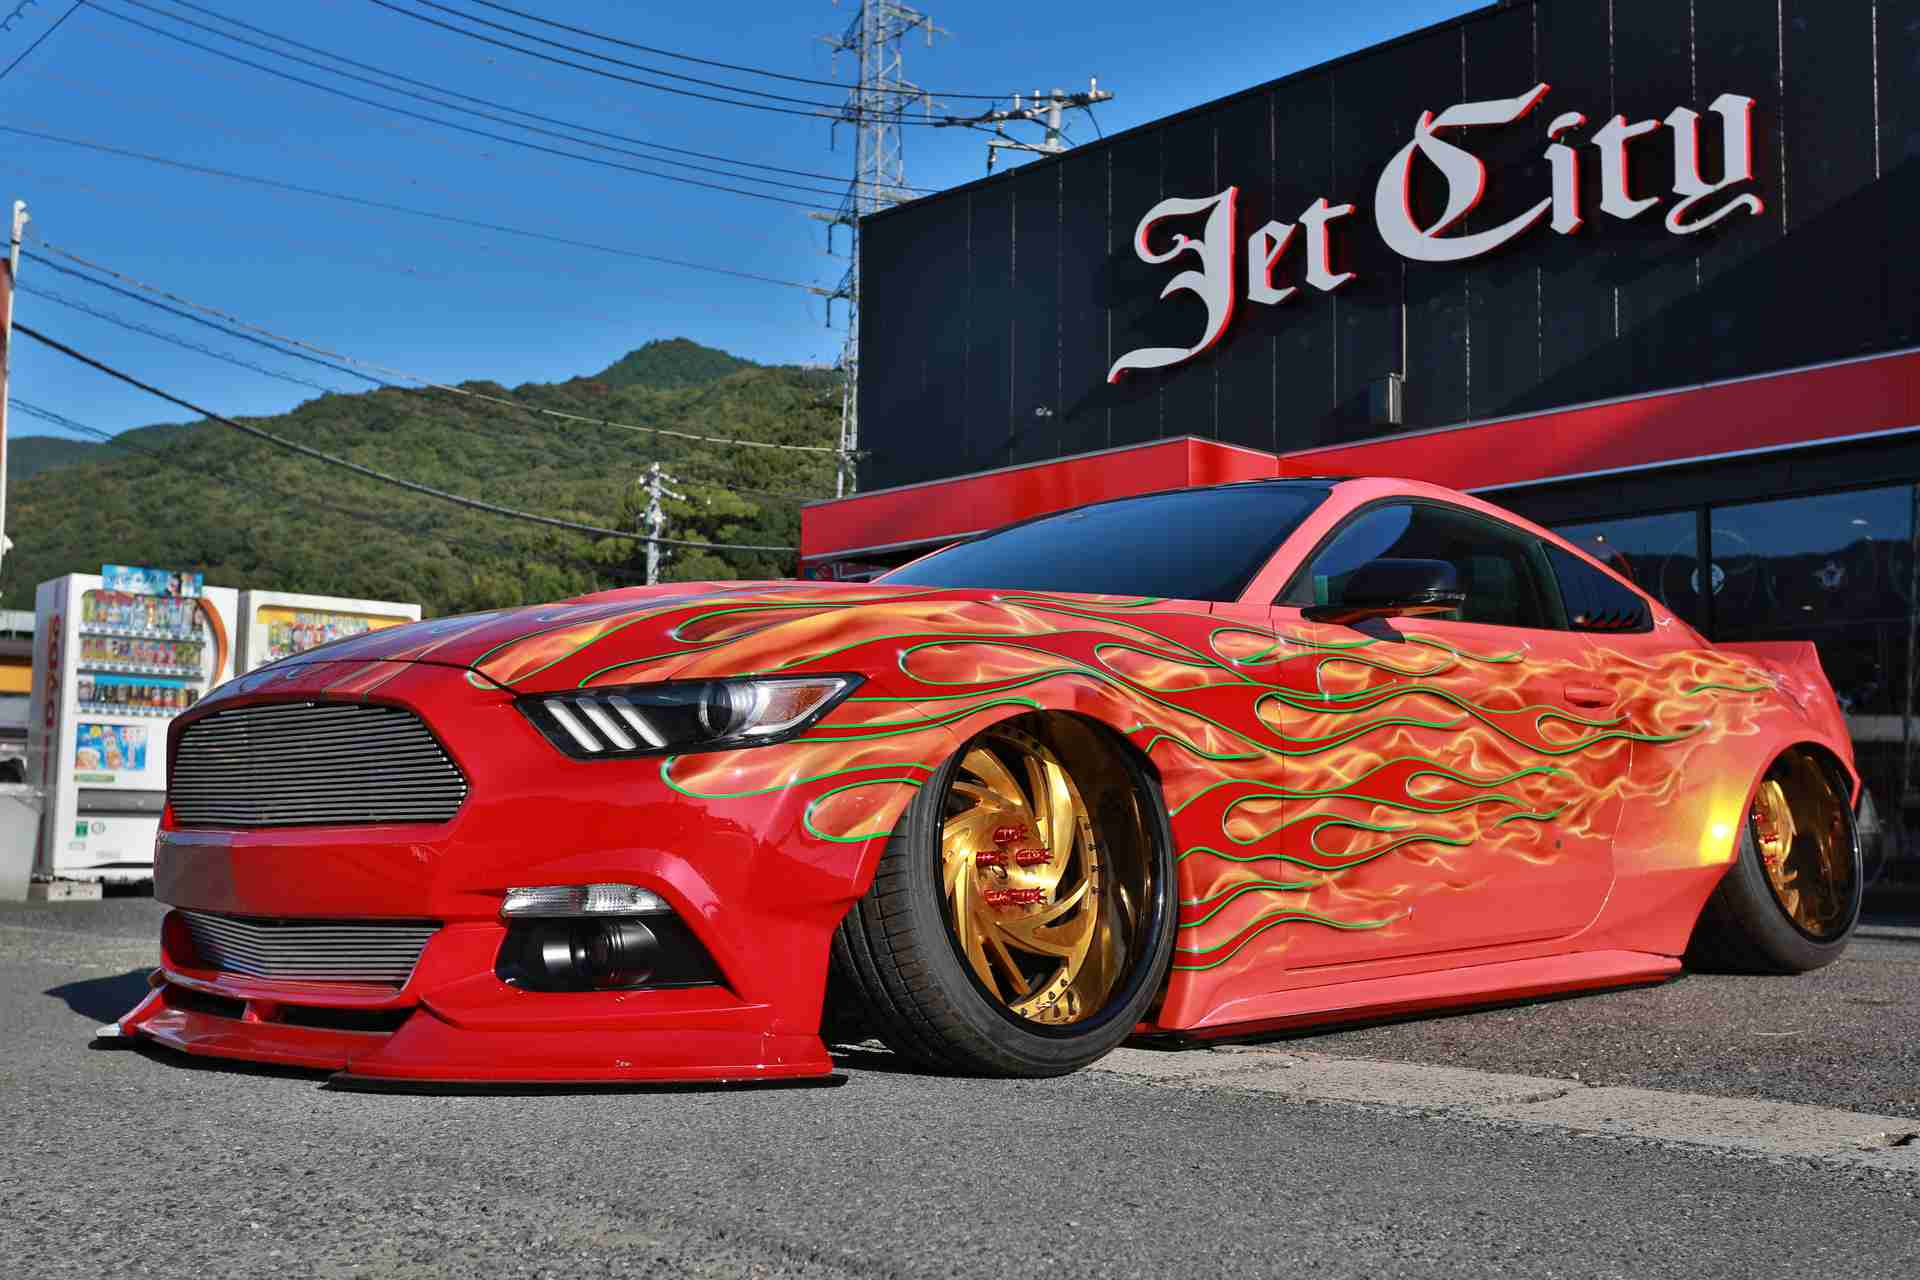 Jet City Co Ltd's 2017 Ford Mustang